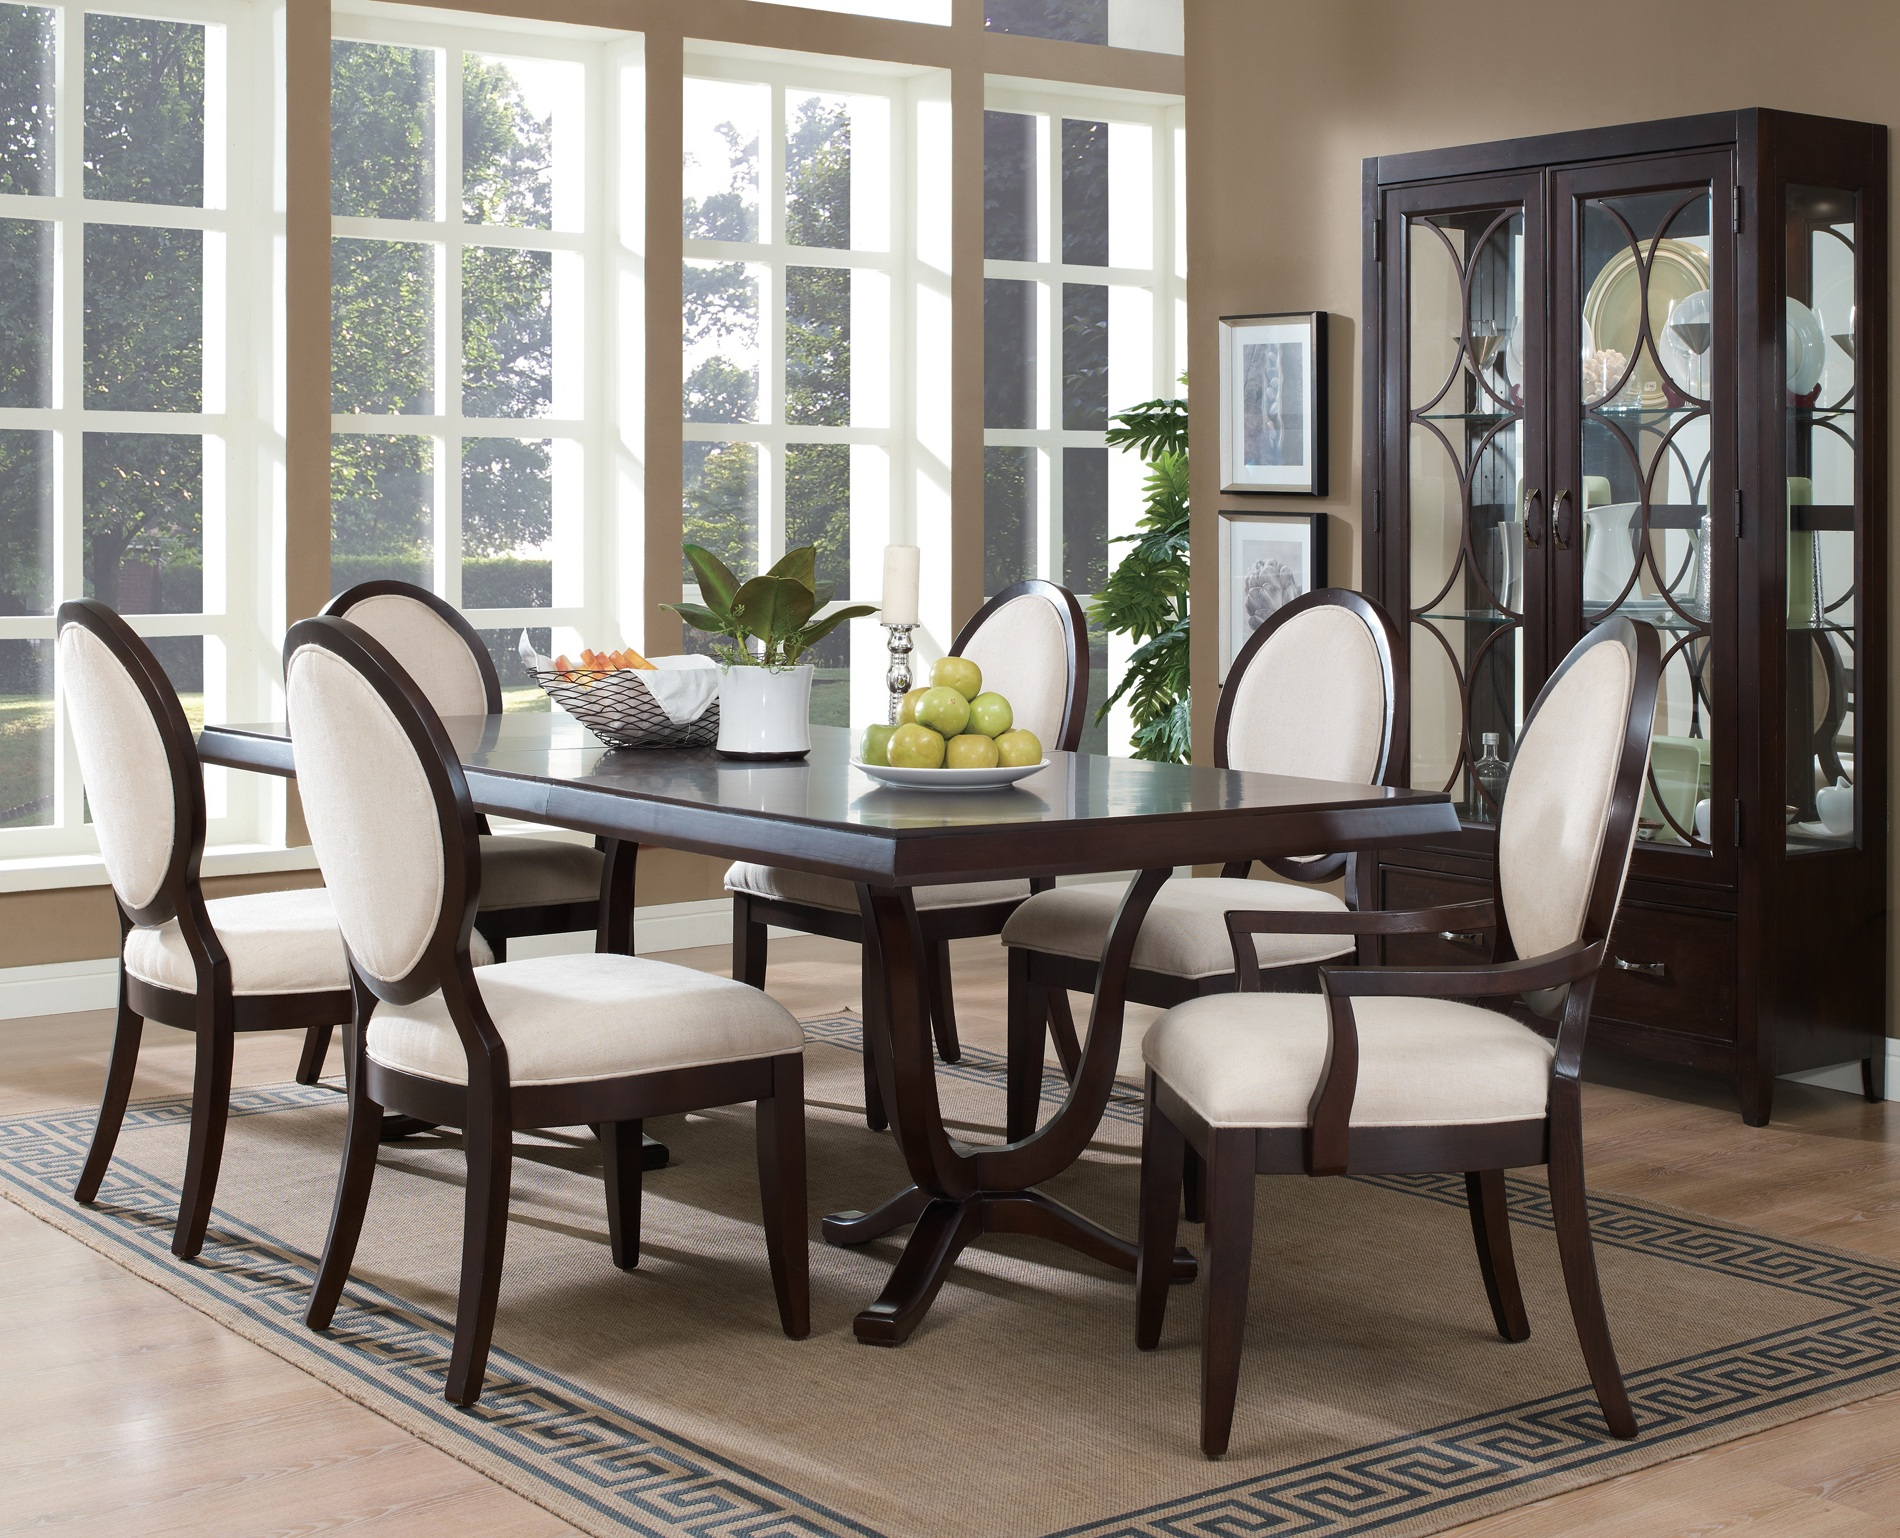 compact dining table and chairs baby chair cover room ideas with images